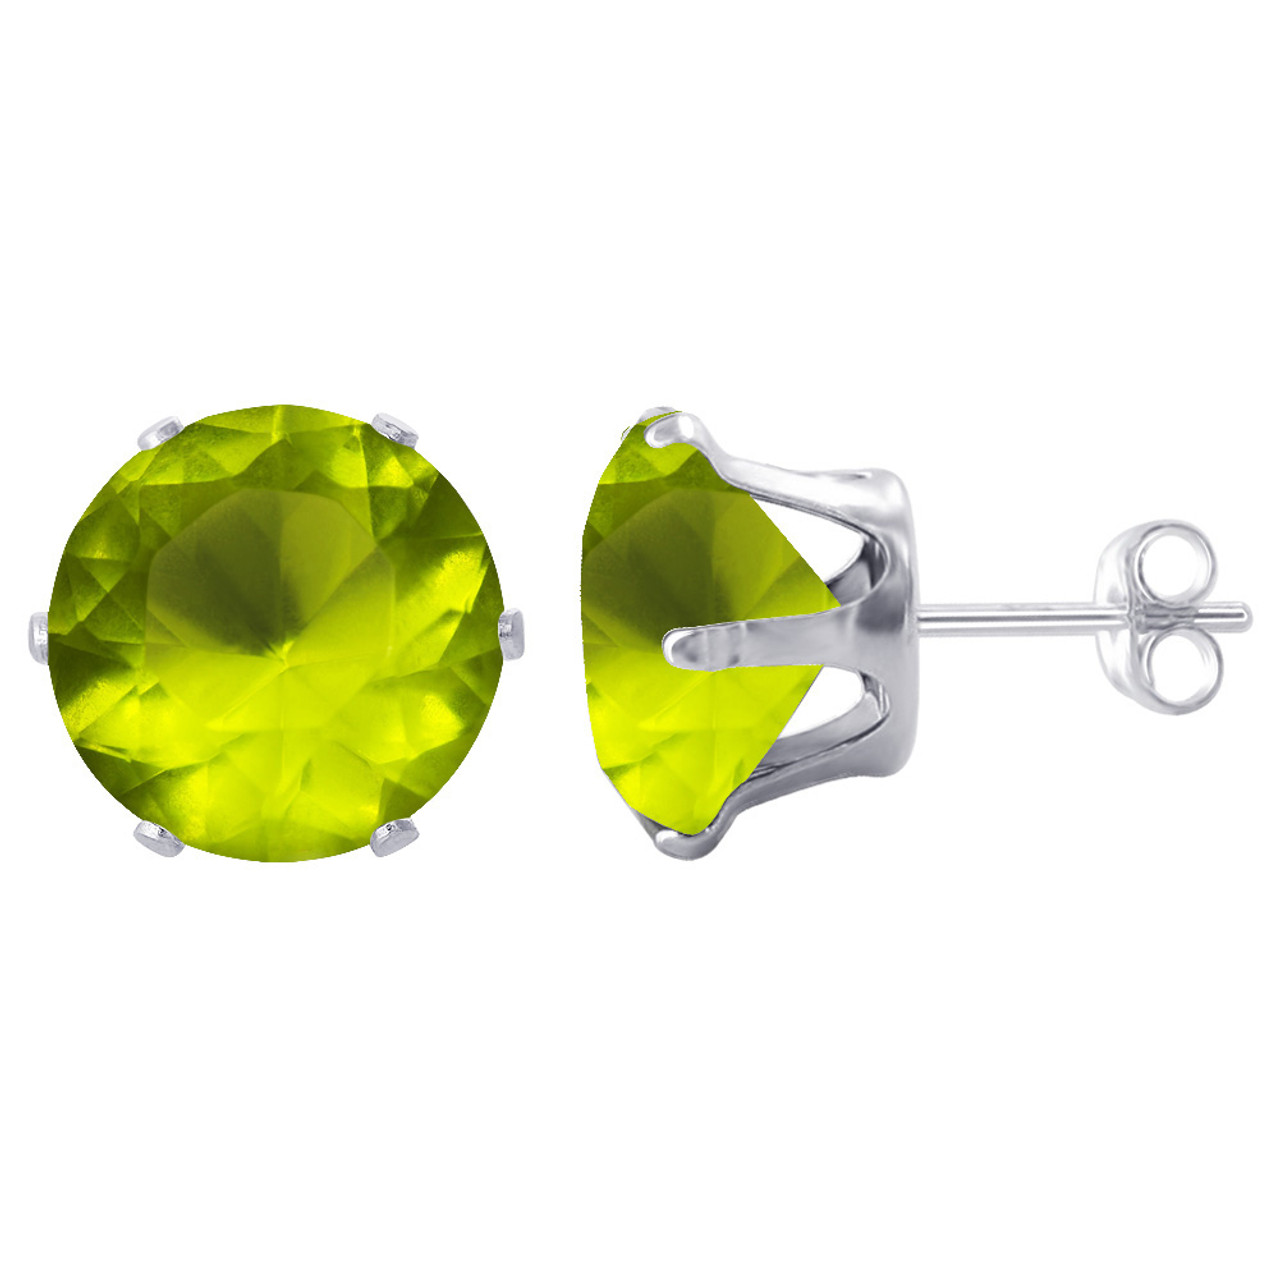 11mm Round Green Cubic Zirconia CZ Stud Earrings